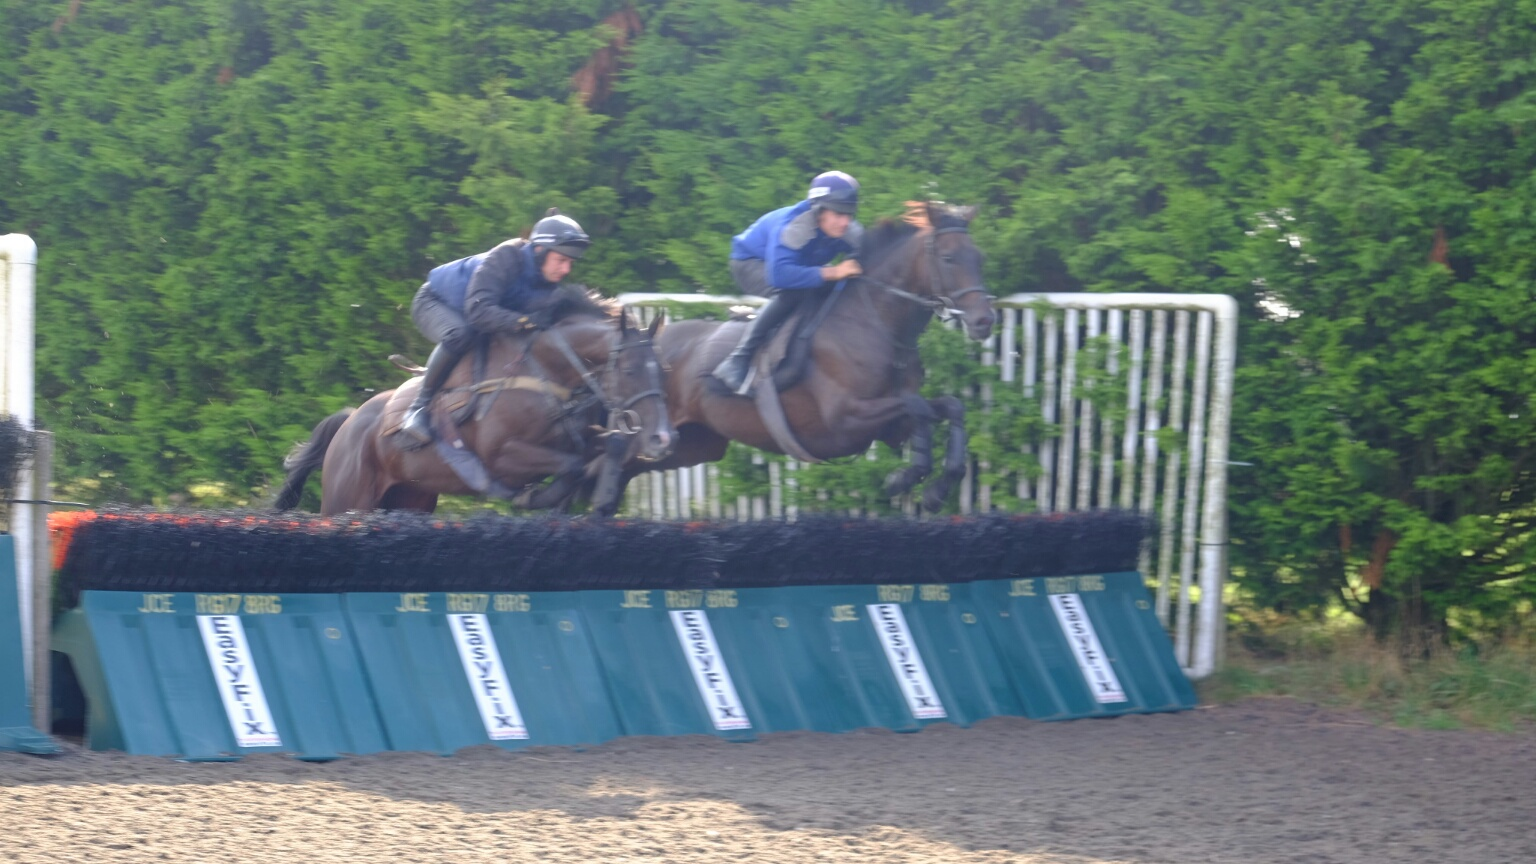 Milord and Up for an Oscar jumping the hurdles